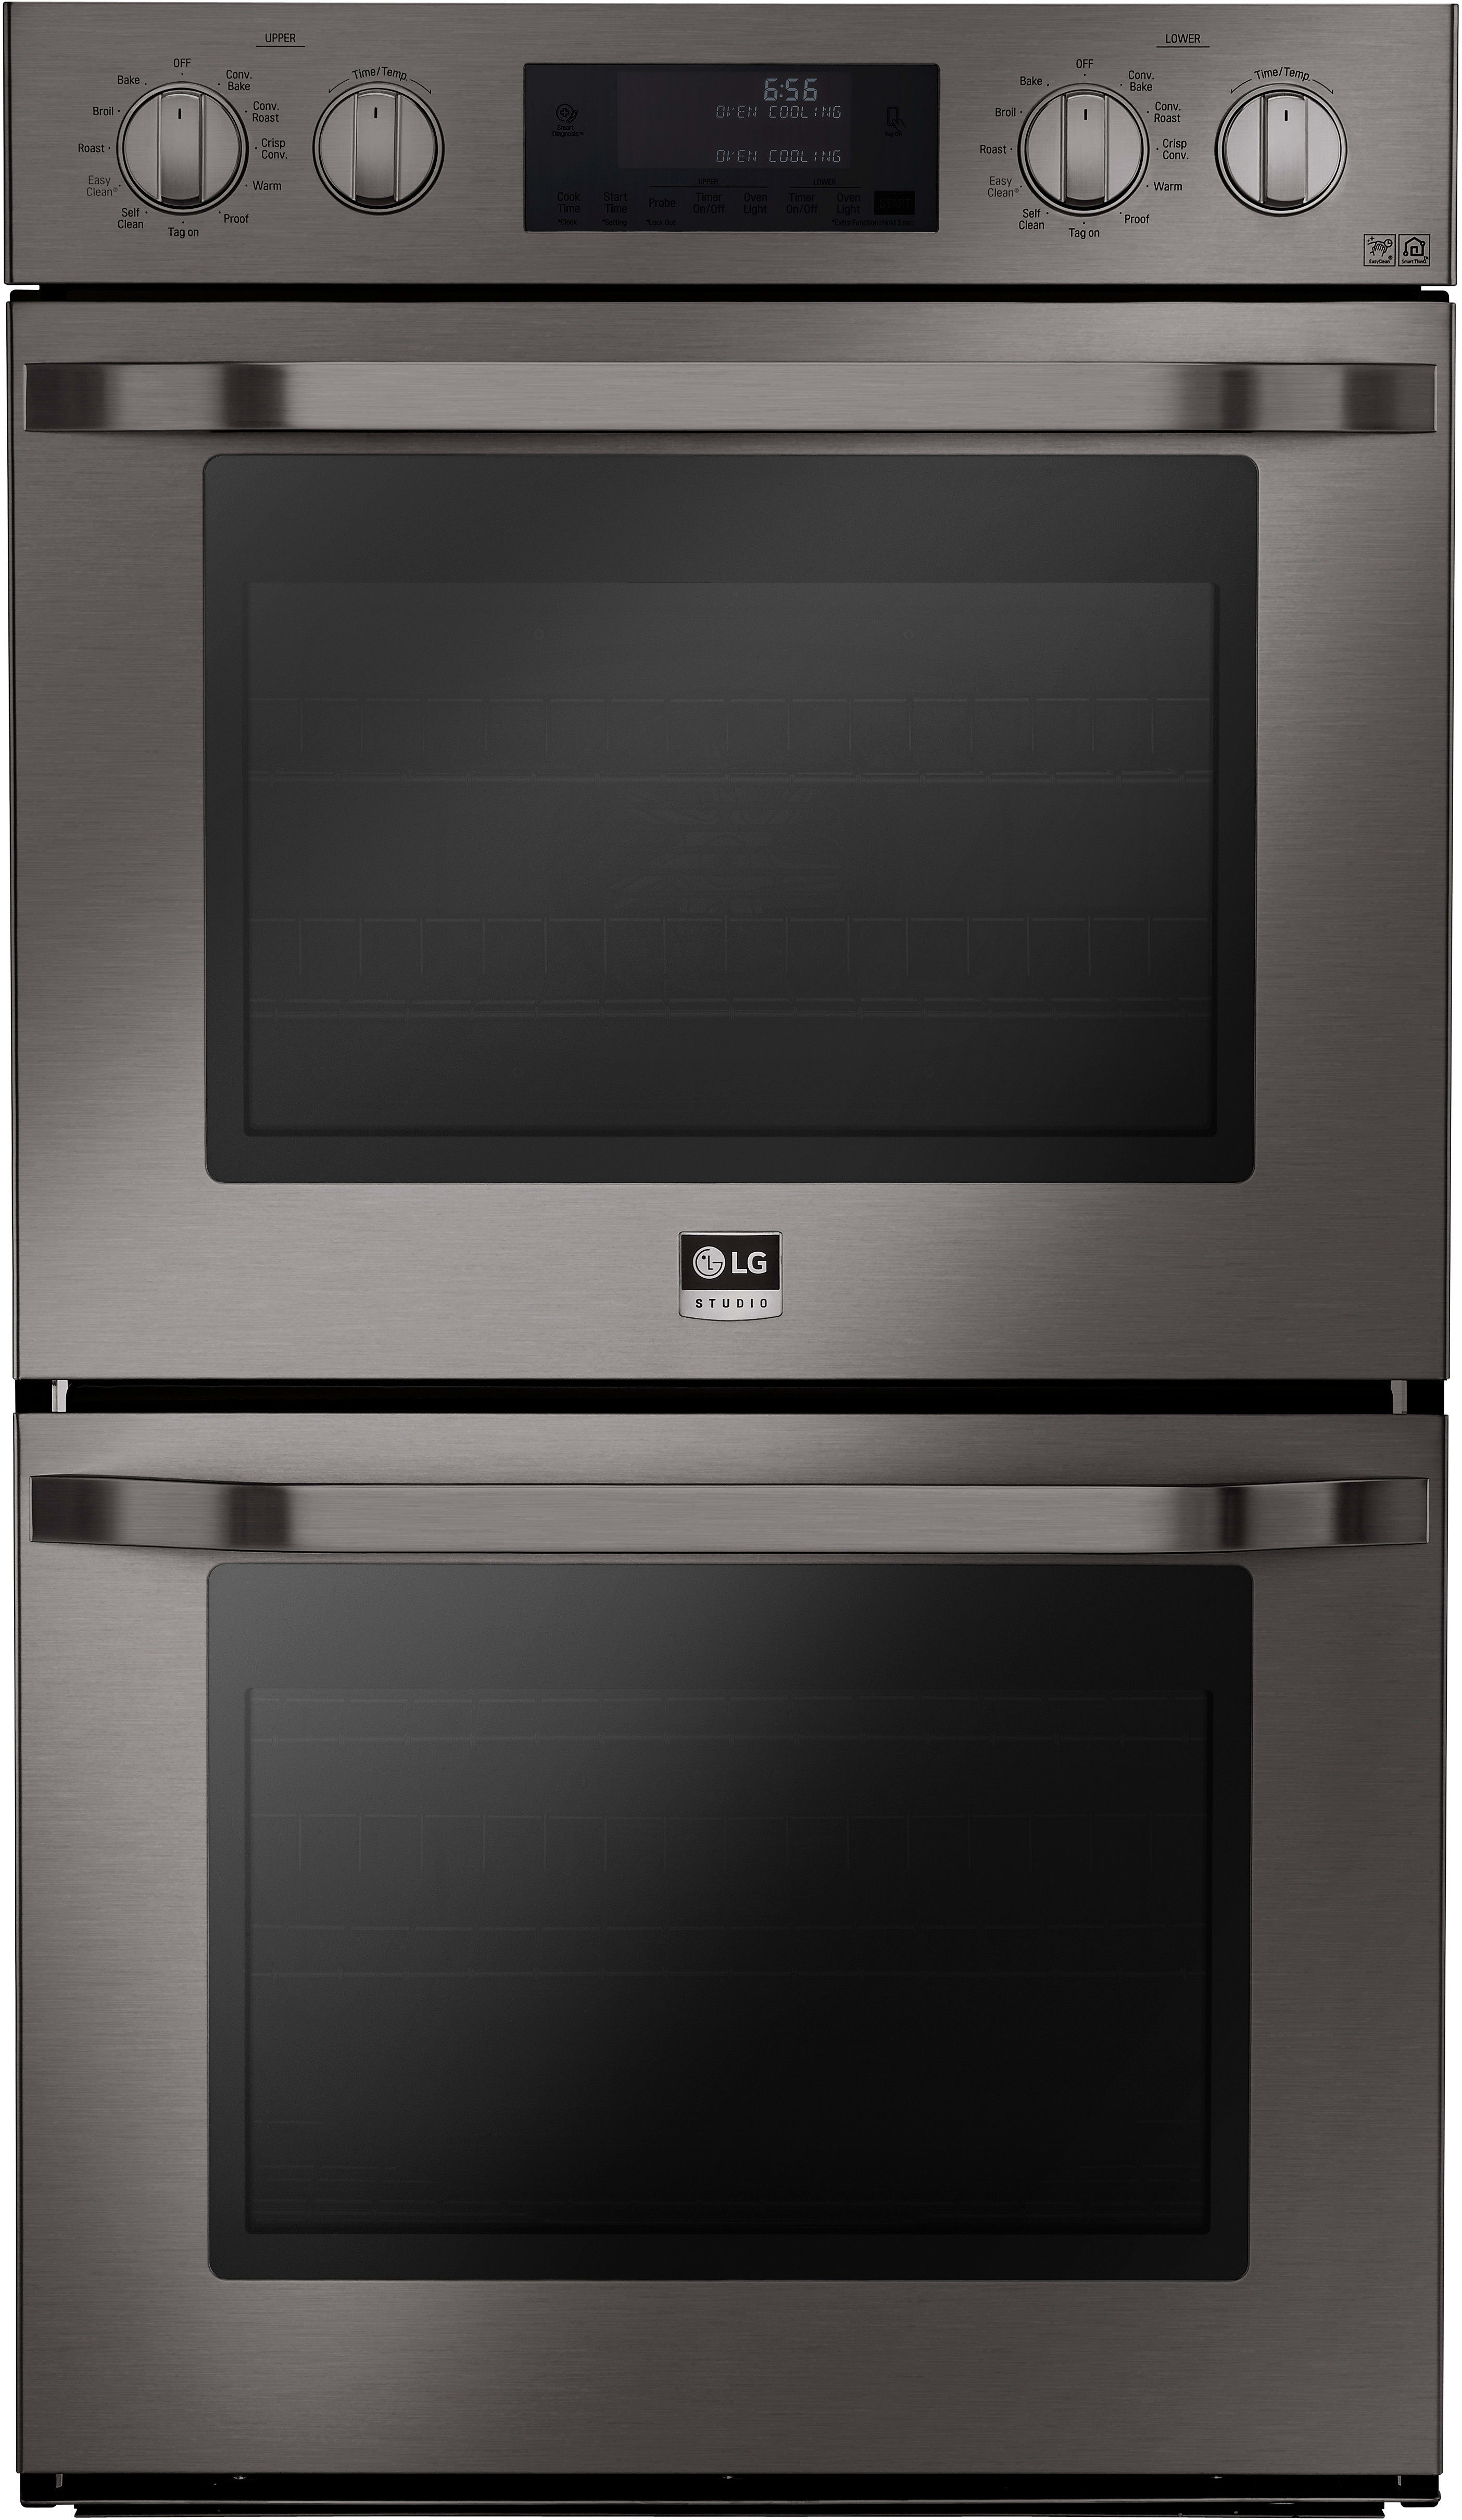 Lg Lswd309bd 30 Inch Double Electric Wall Oven With